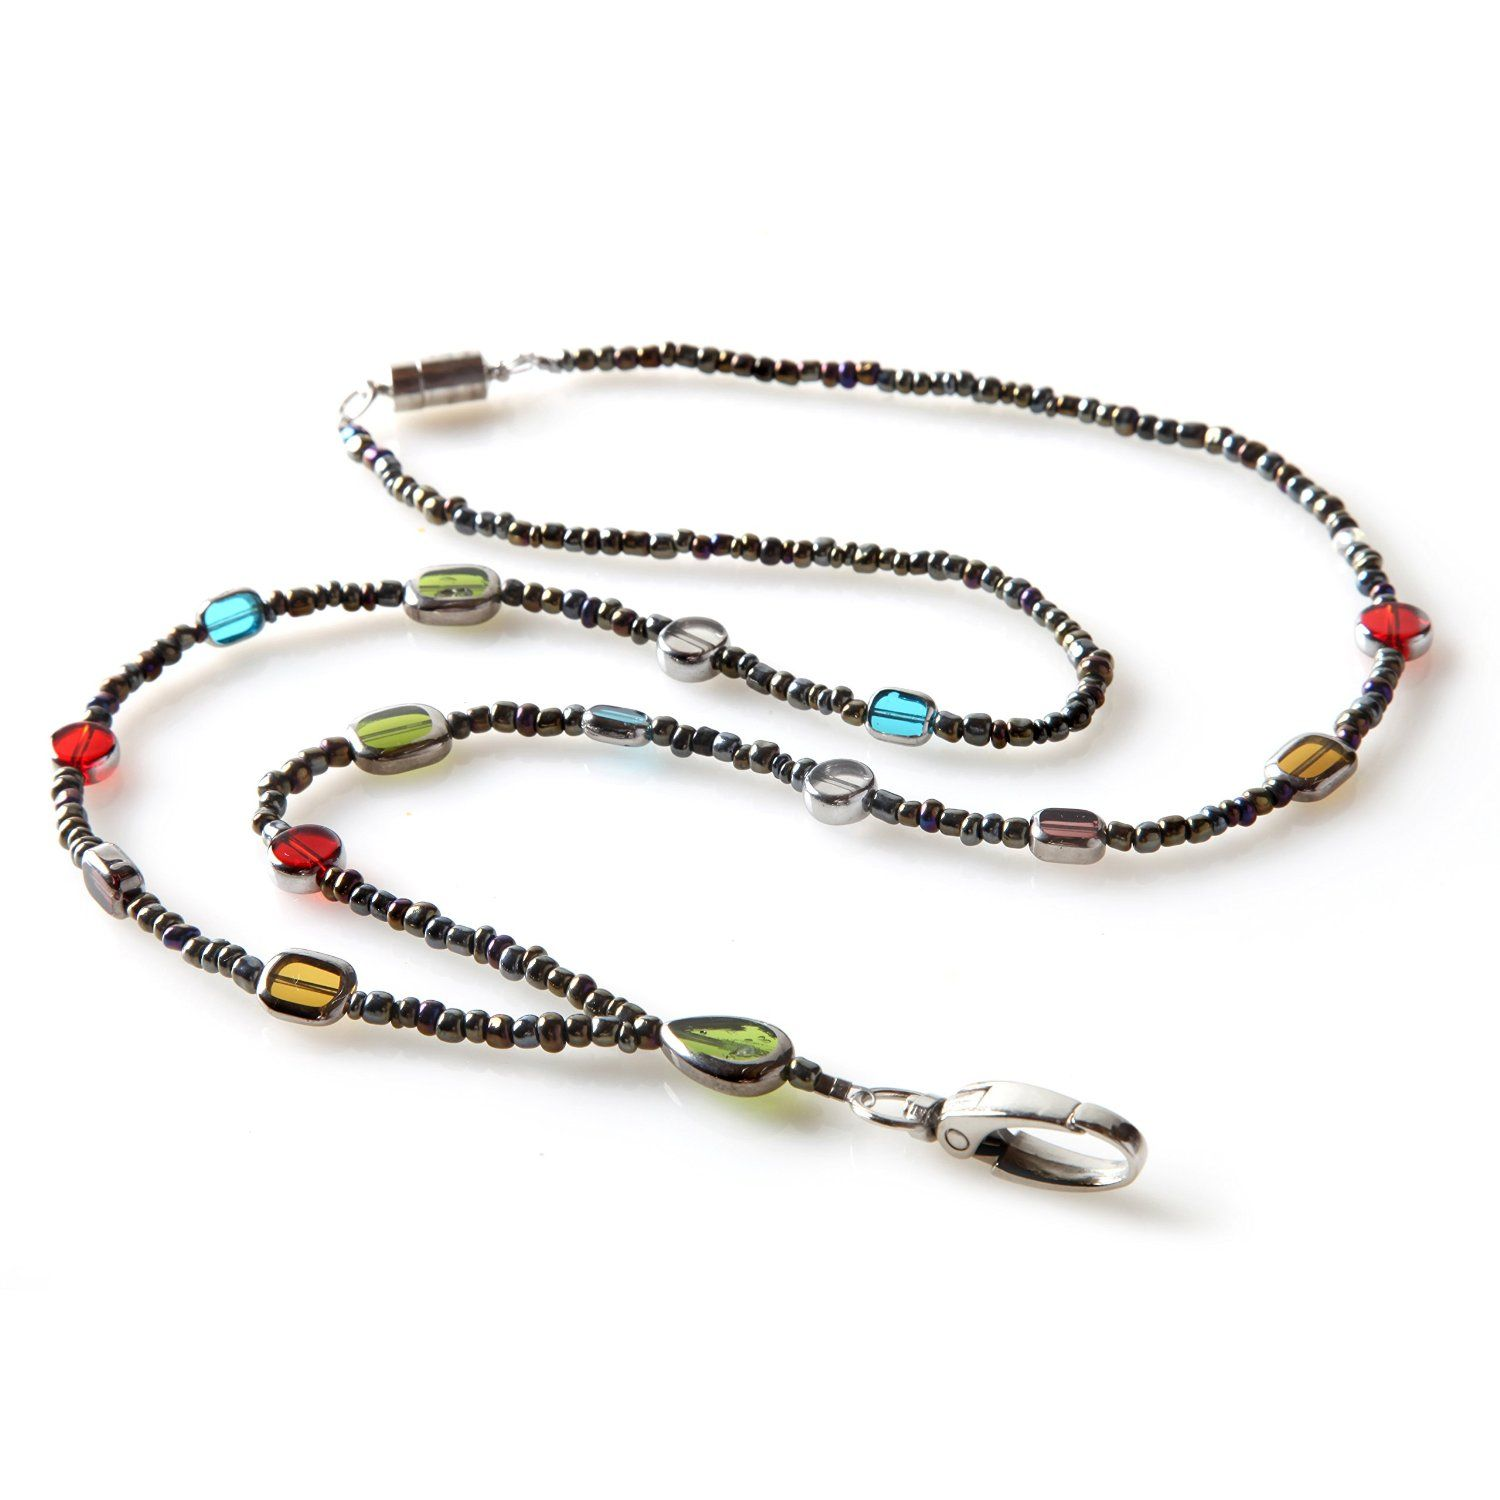 Amazon.com: BoojeeBeads Stained Glass Beaded Badge ID Necklace ...